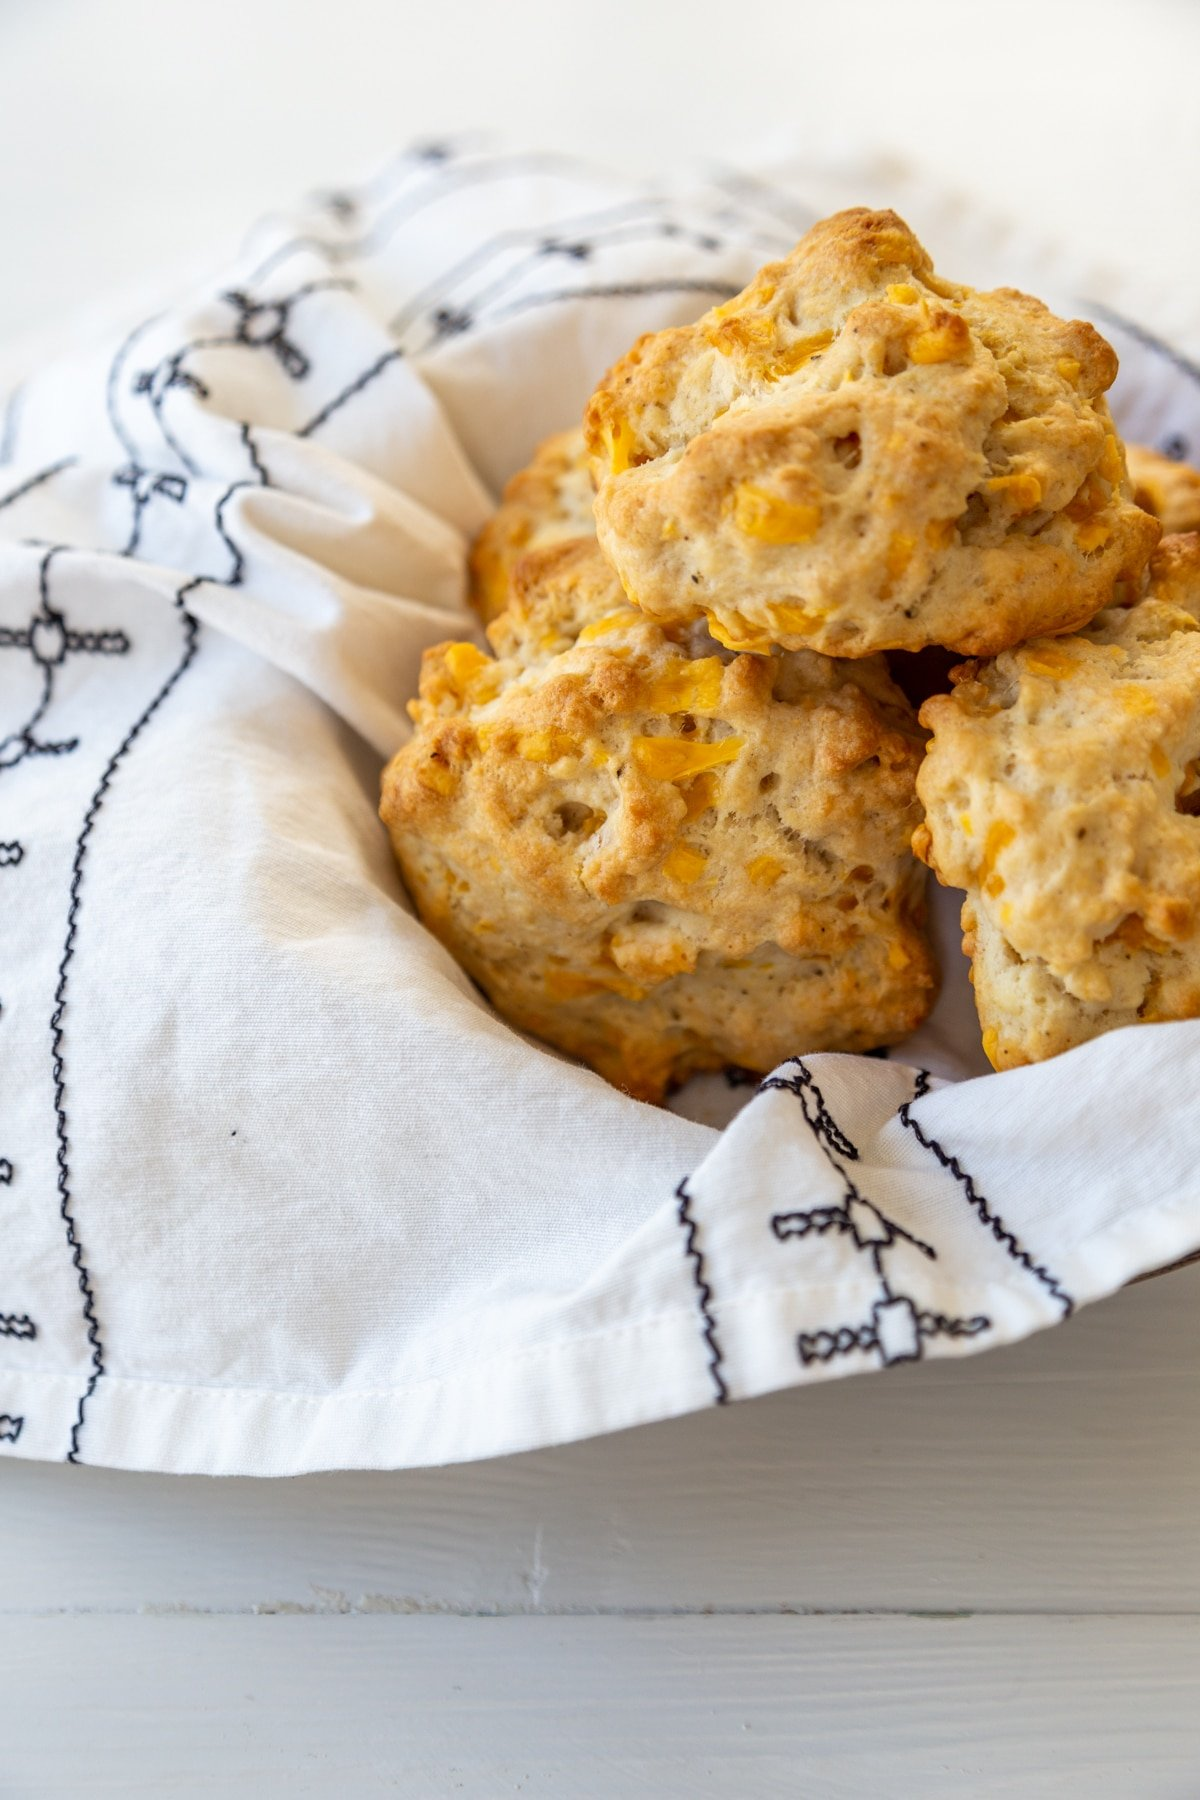 Cheddar drop biscuits in a bowl lined with a white and black patterned napkin.